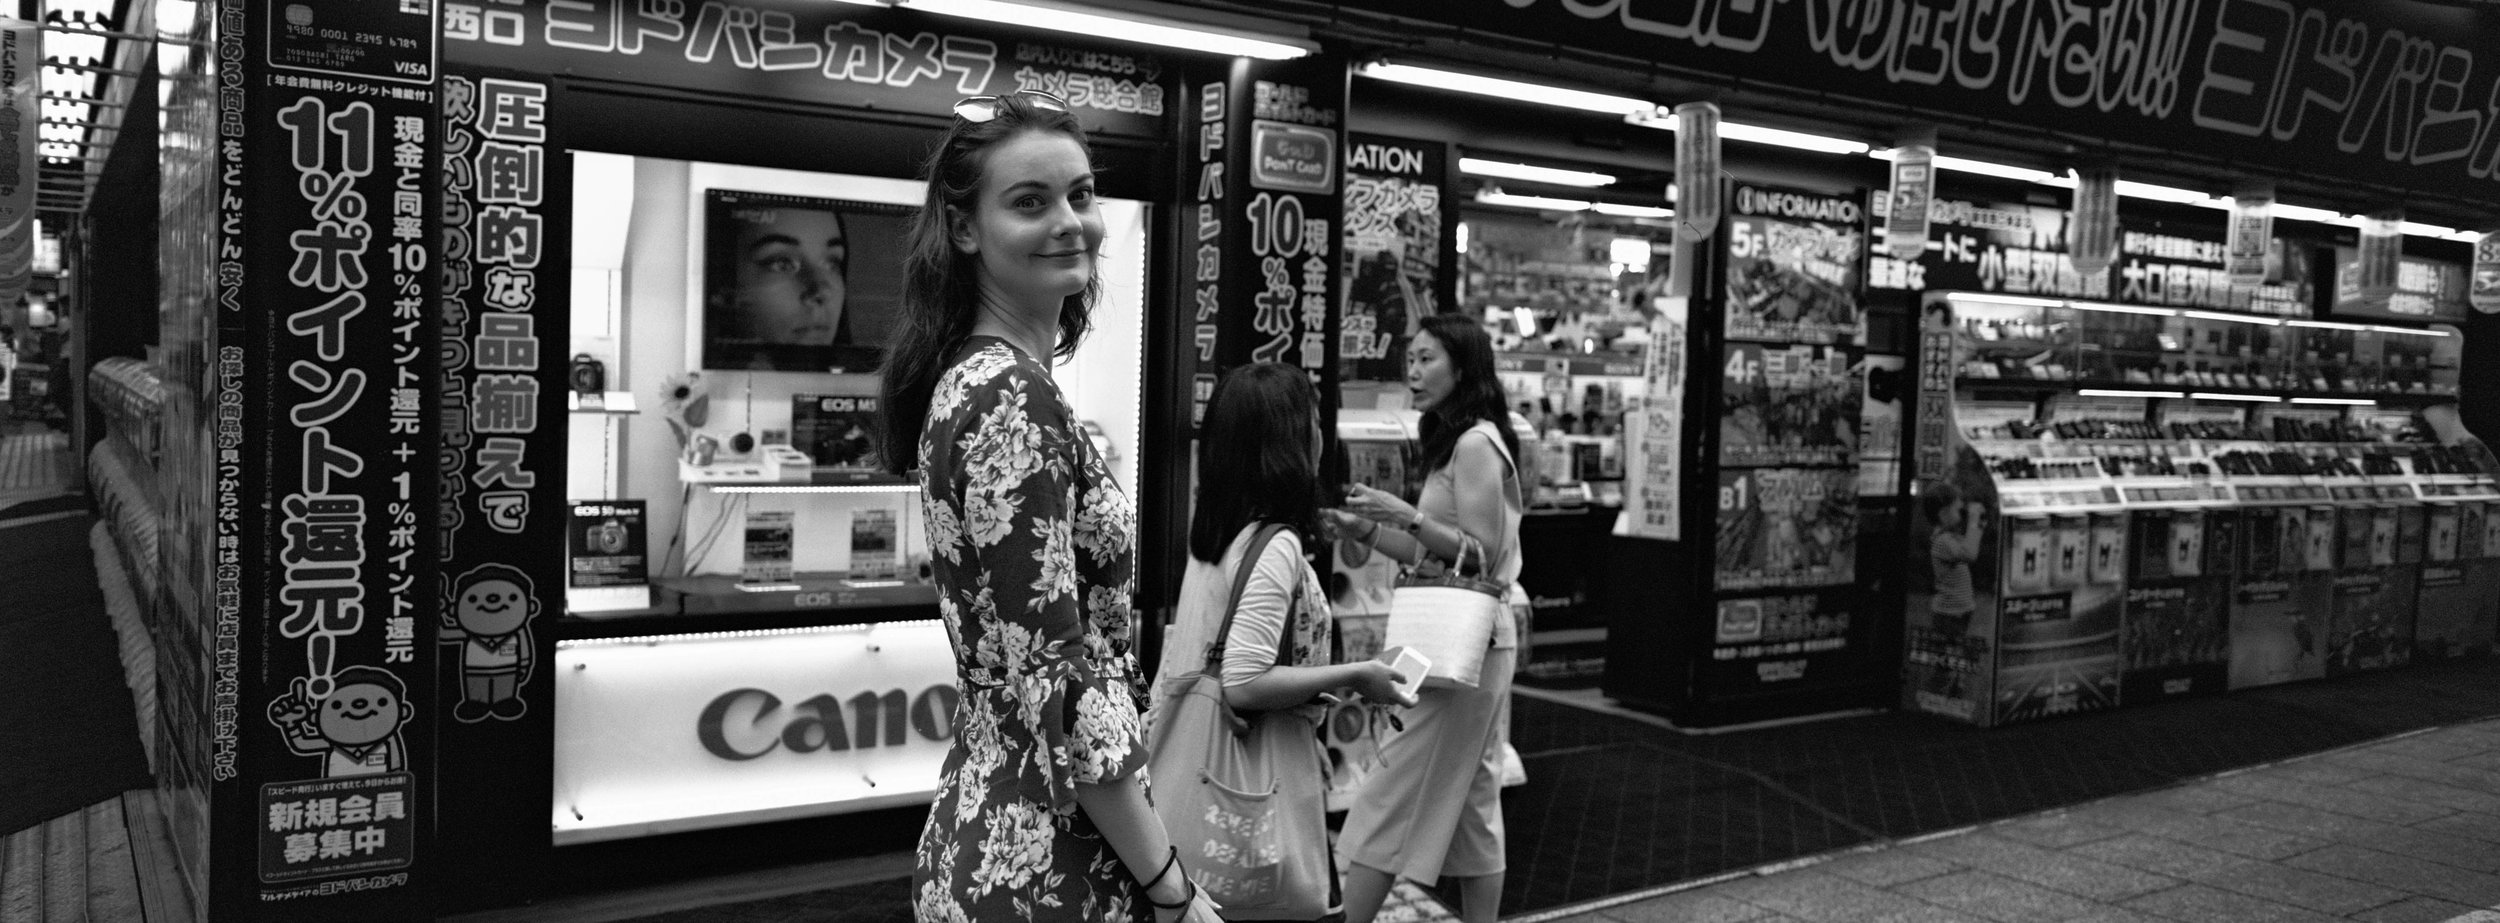 Outside Yobadashi, Shinjuku - Ilford XP2 Super 400